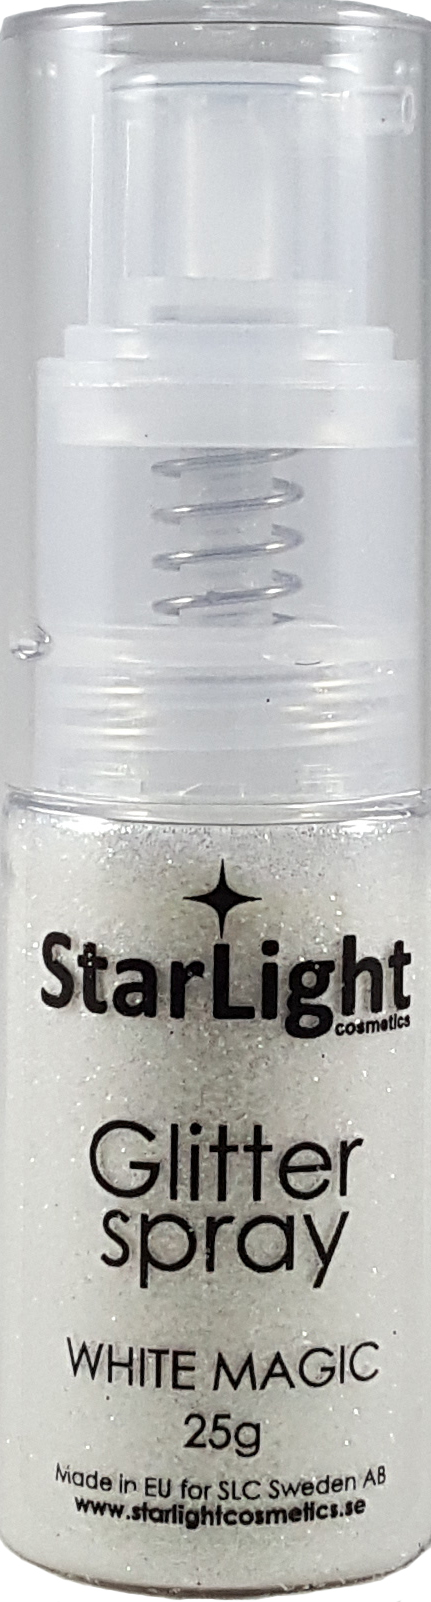 Naglar Glitter Spray White Magic - 25 gram